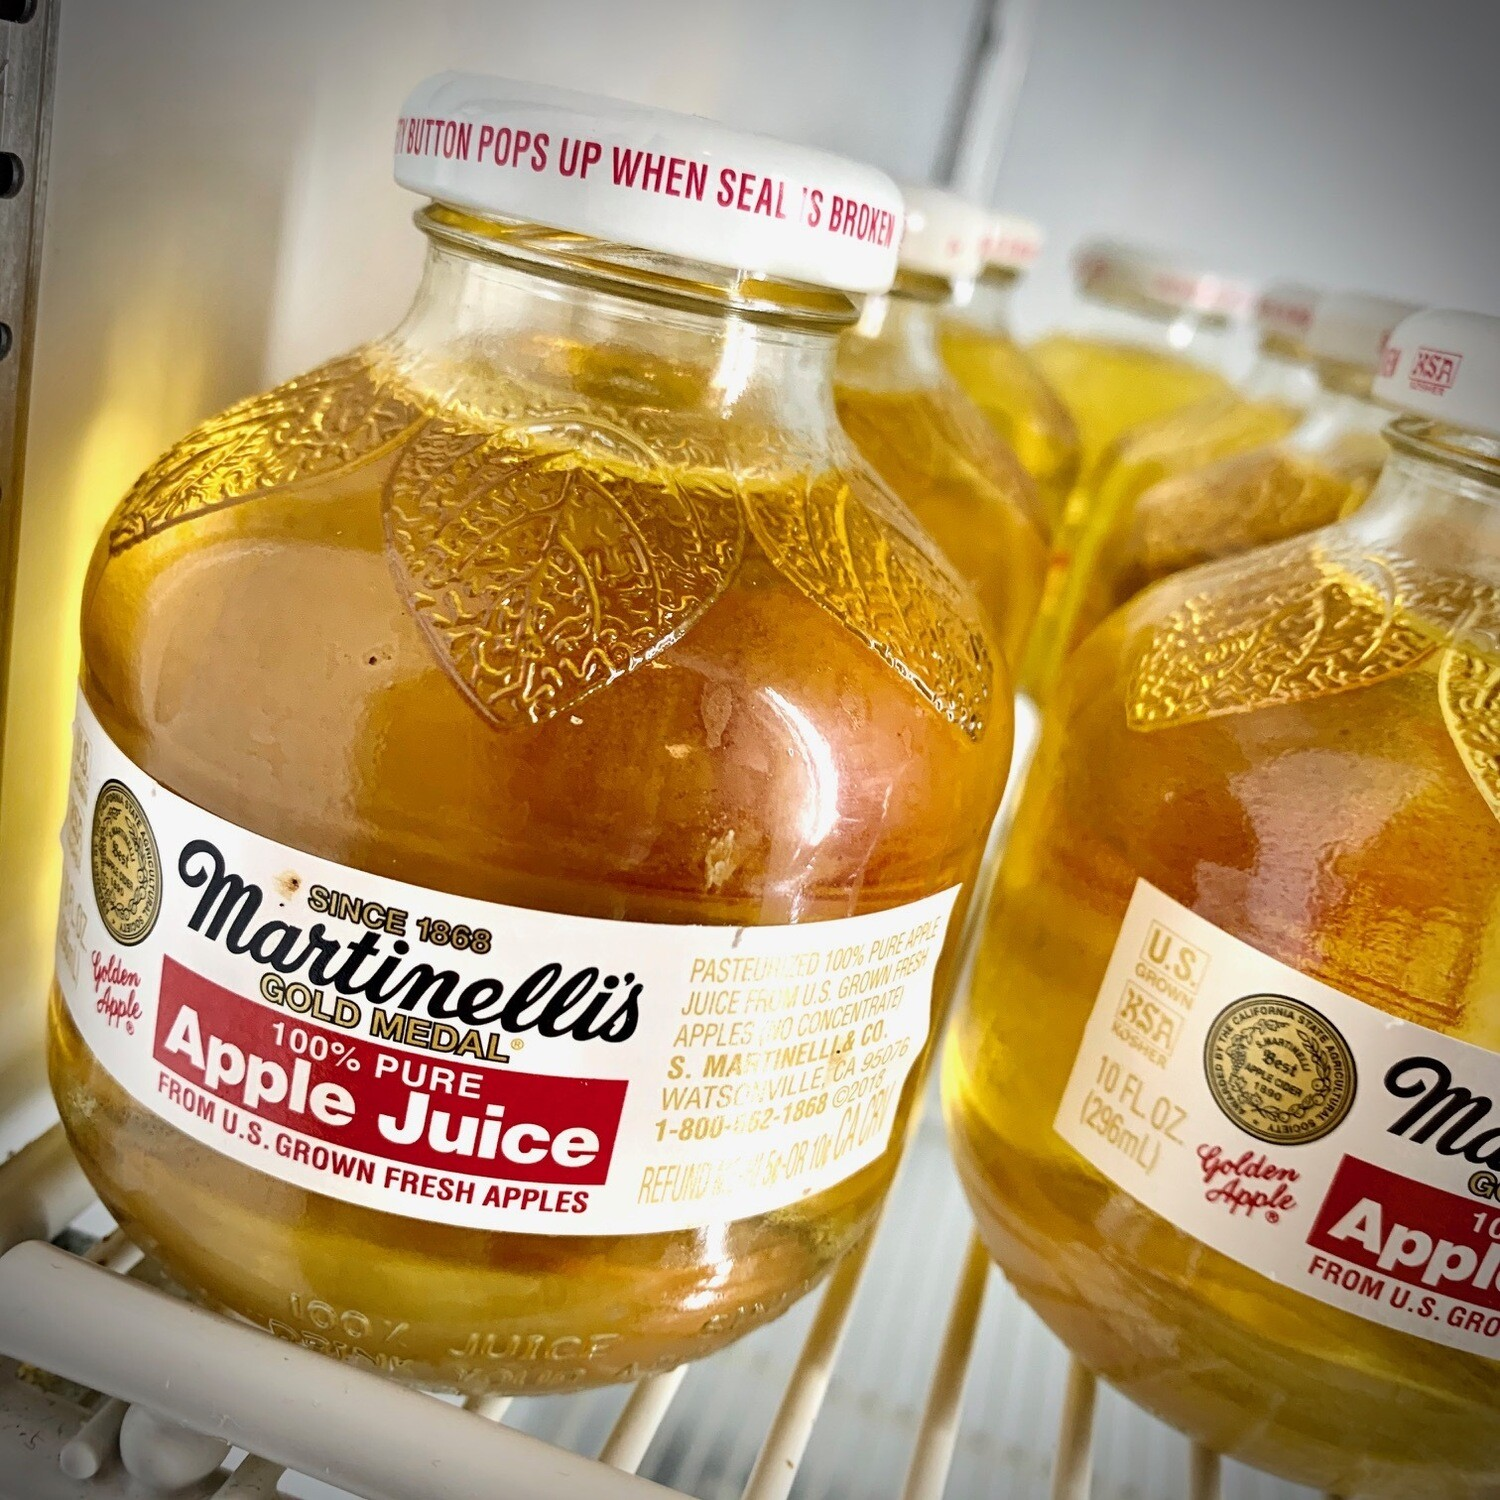 Martinelli's Gold Medal apple juice